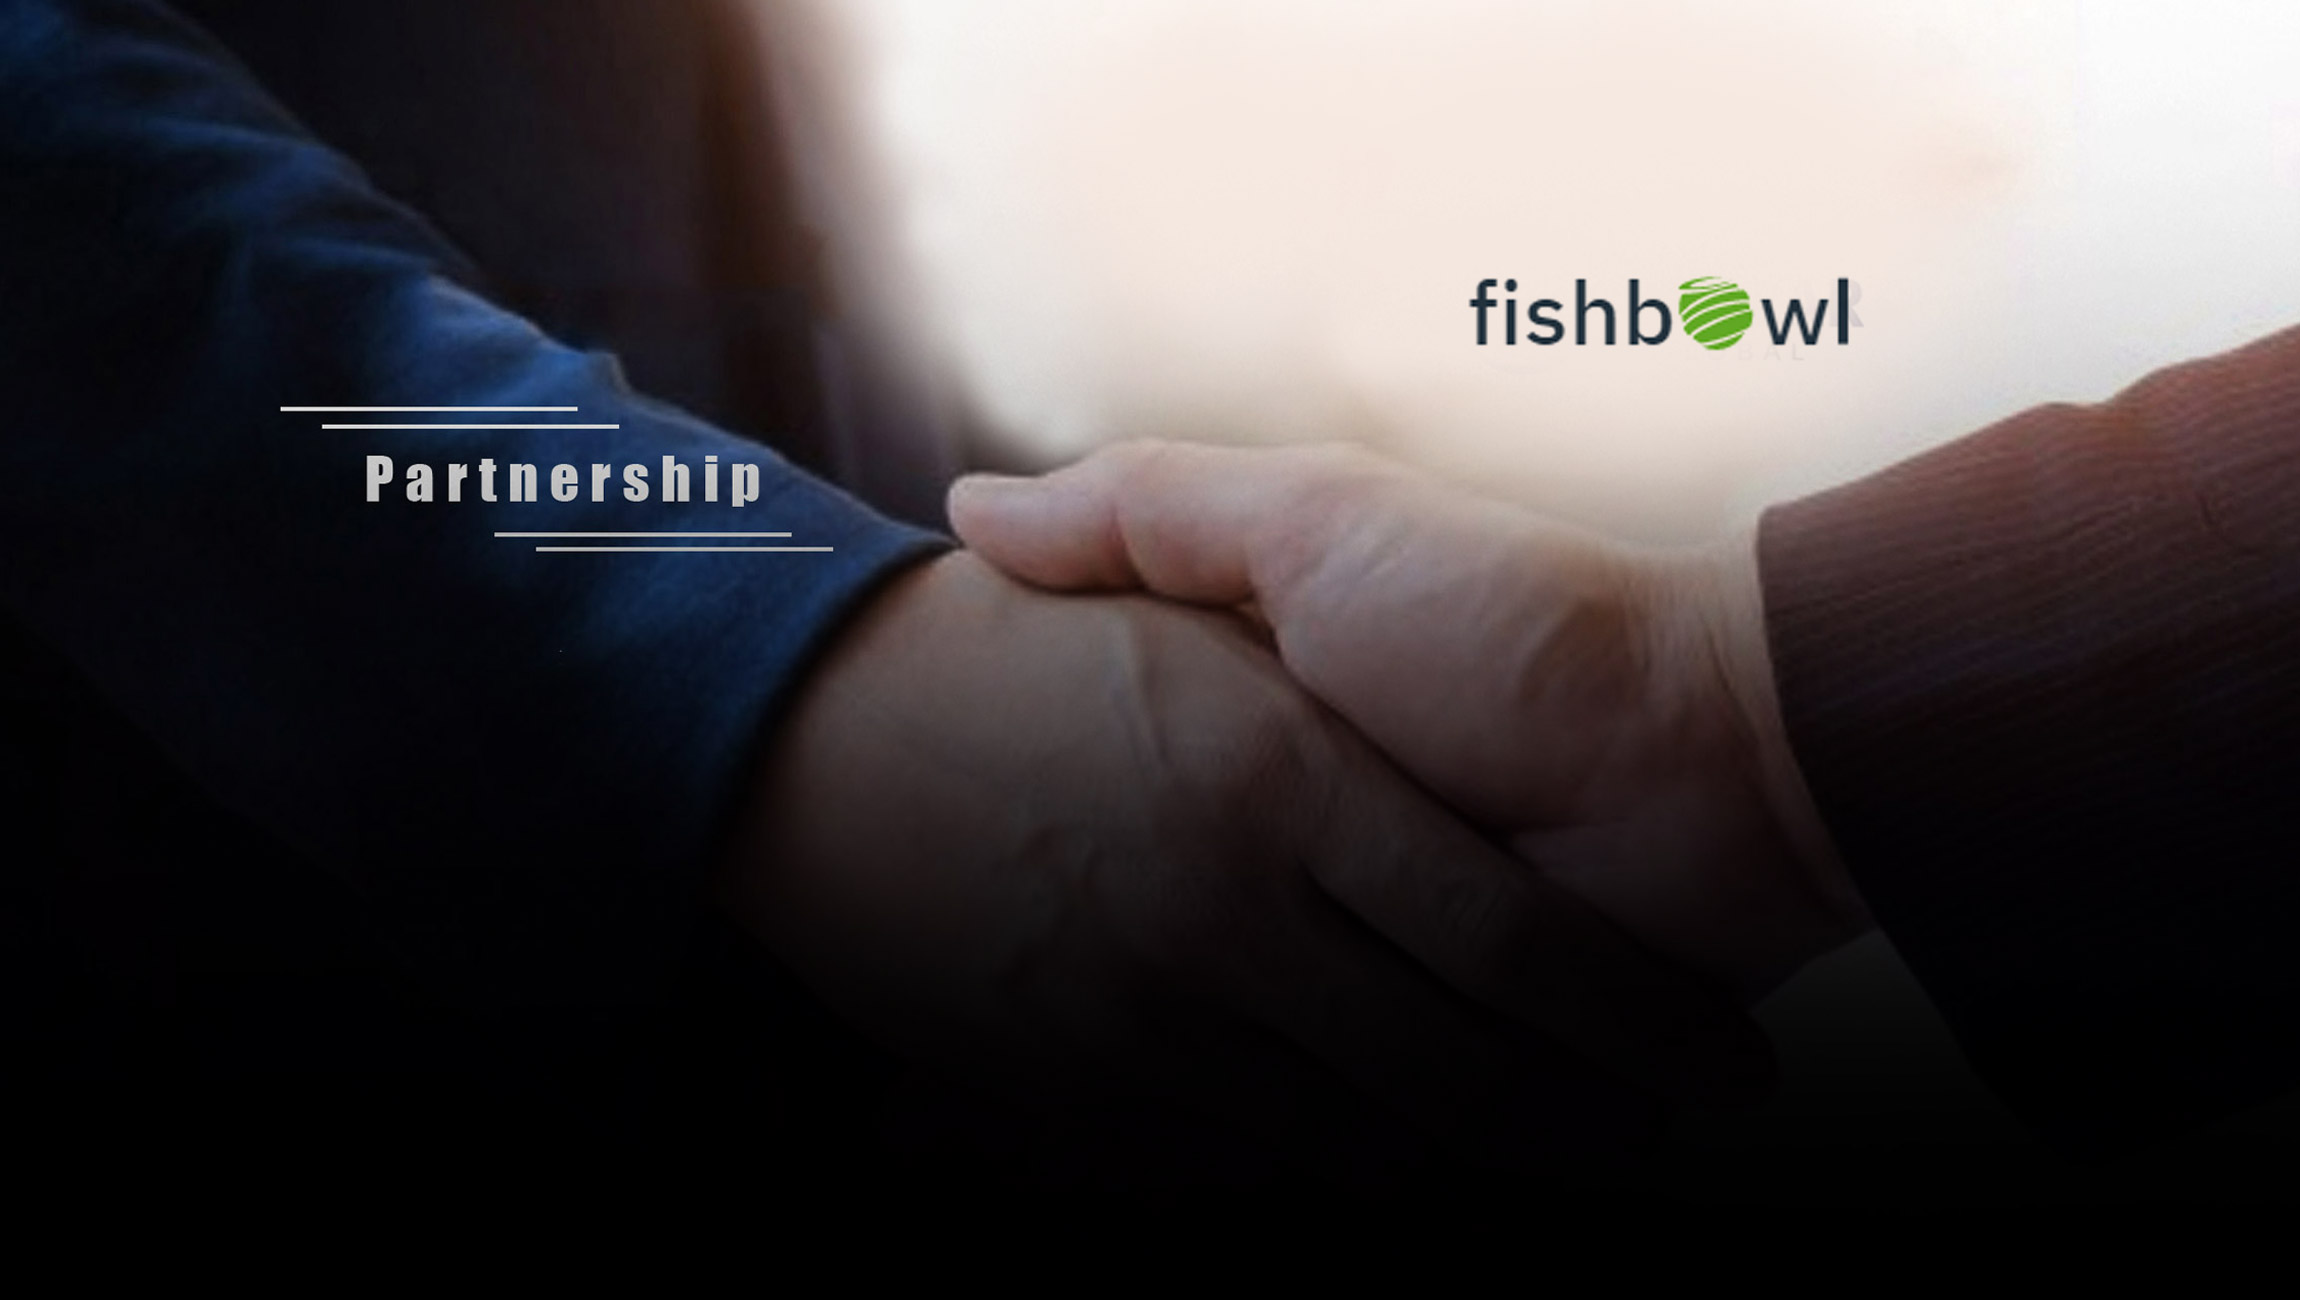 Fishbowl's Partnership with Olo Accelerates Online Ordering Optimization